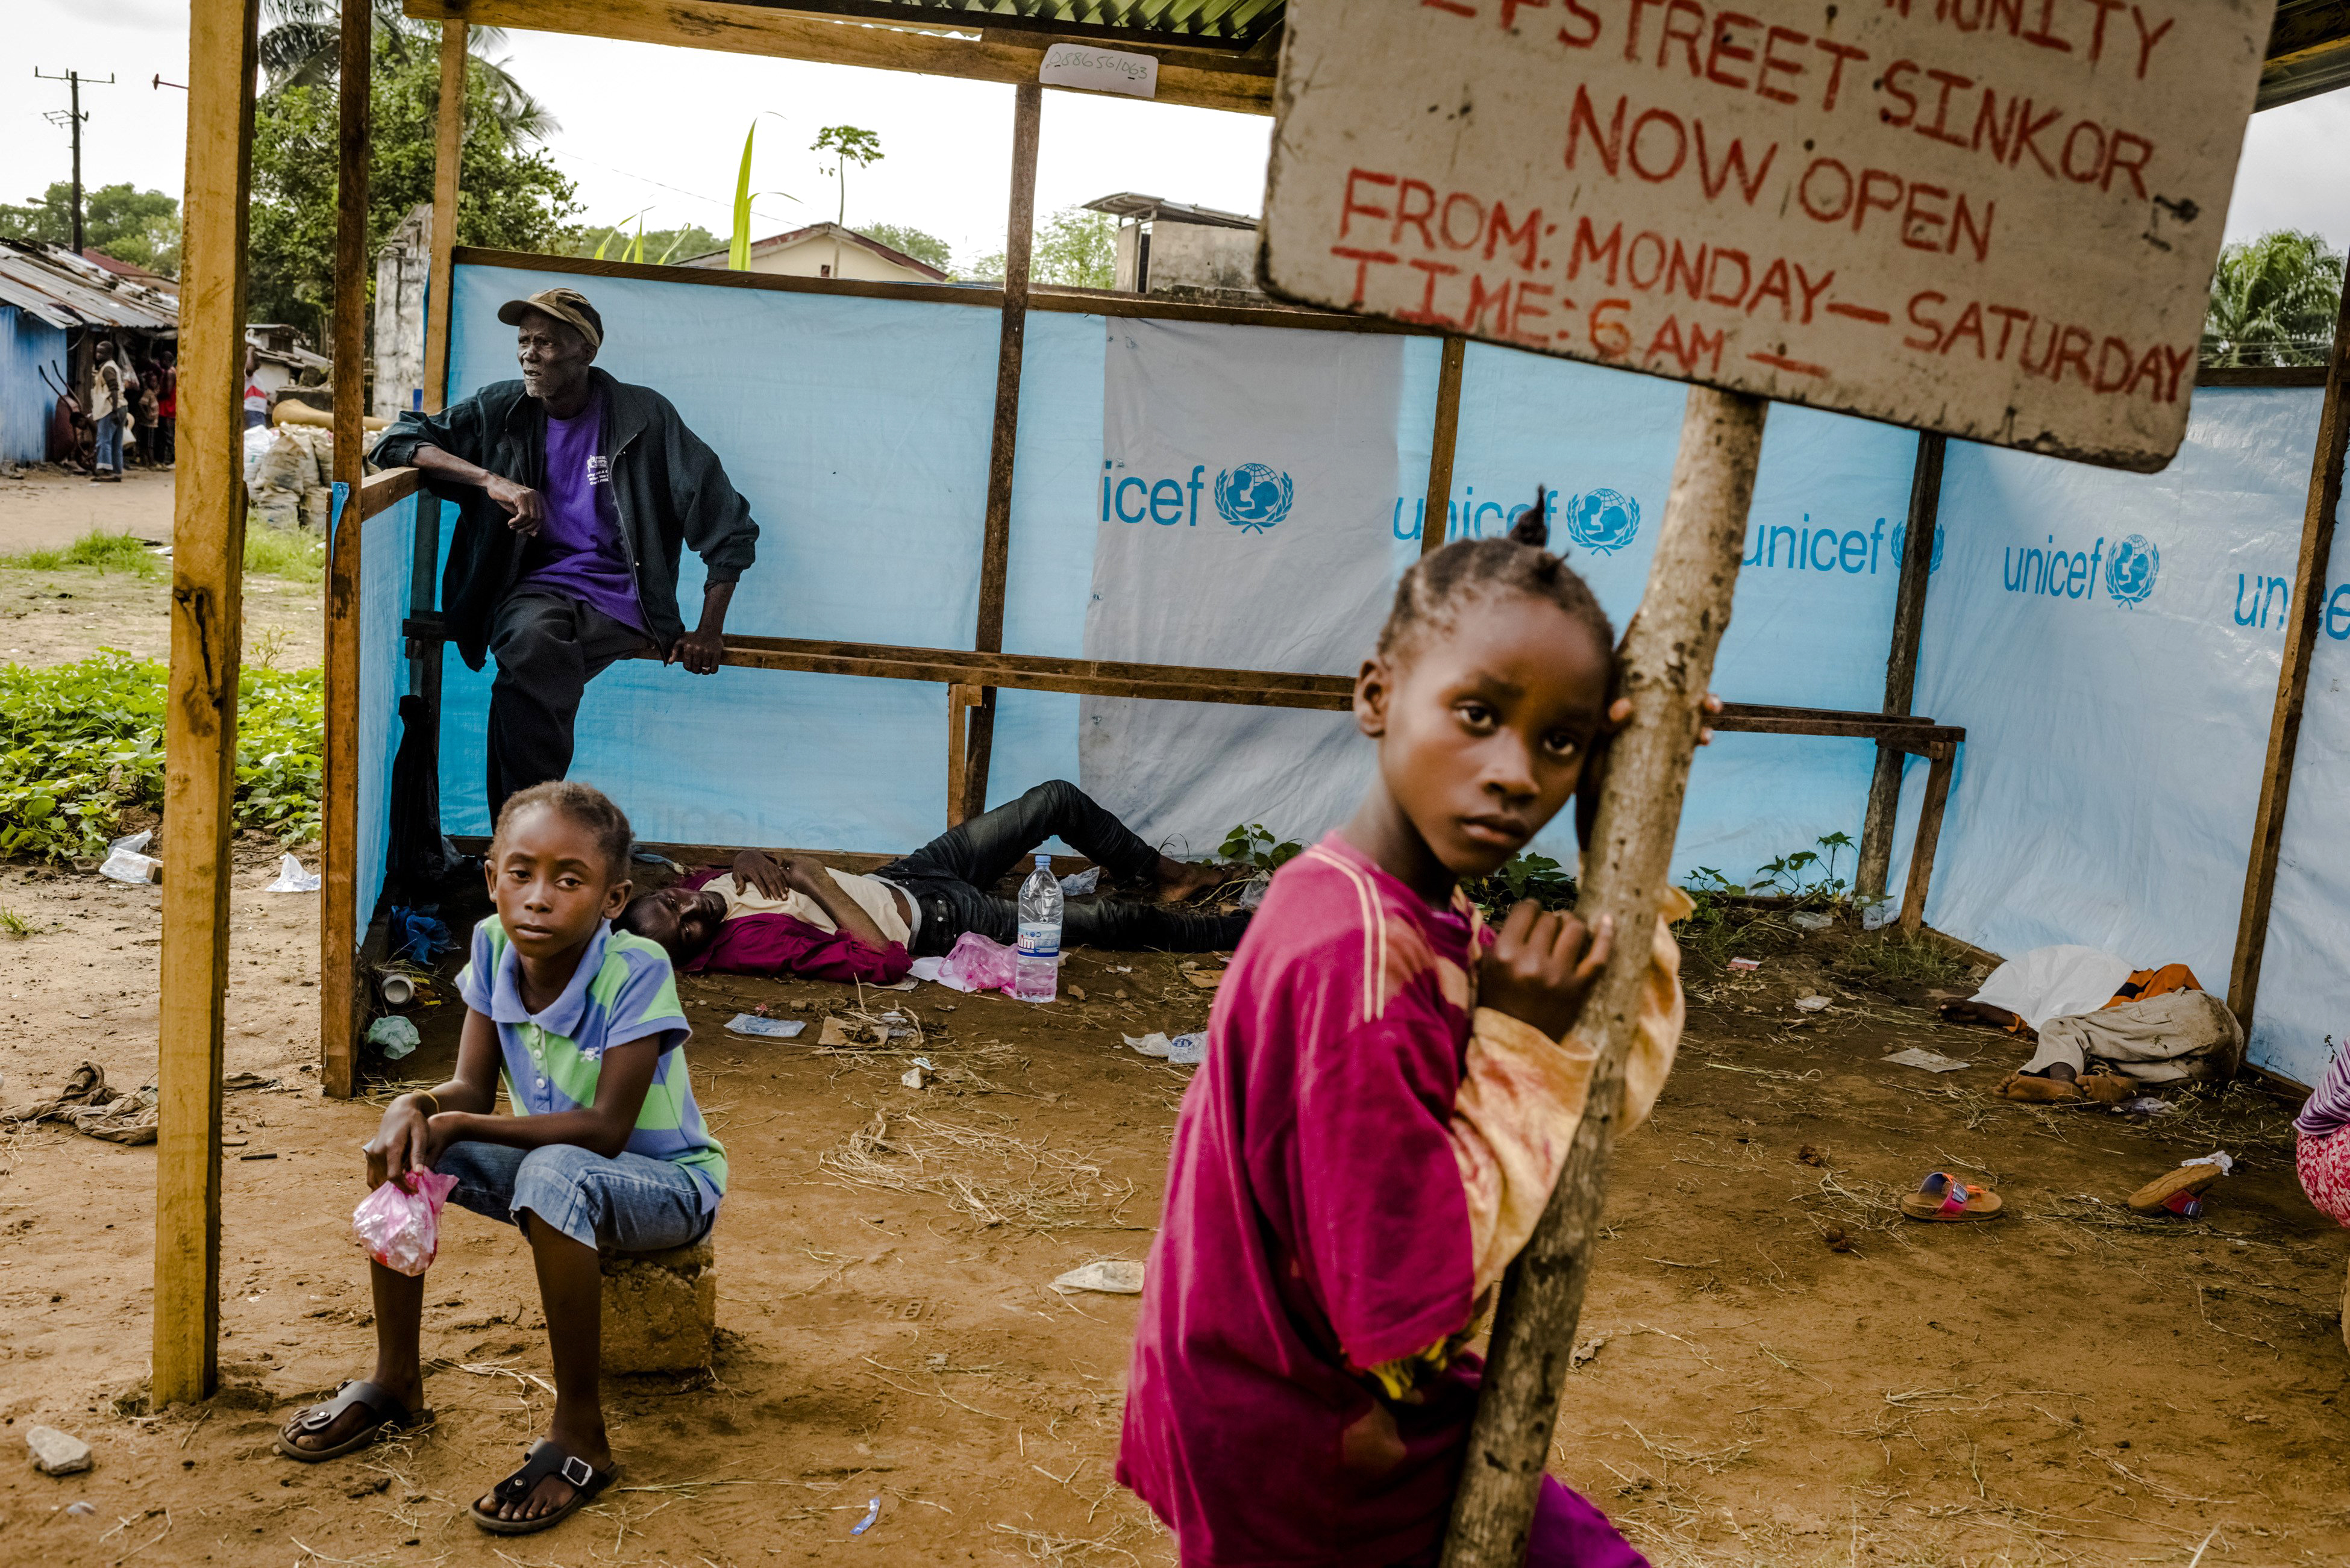 People wait to be admitted into an Ebola treatment facility in Monrovia, Liberia, on Sept. 5, 2014.